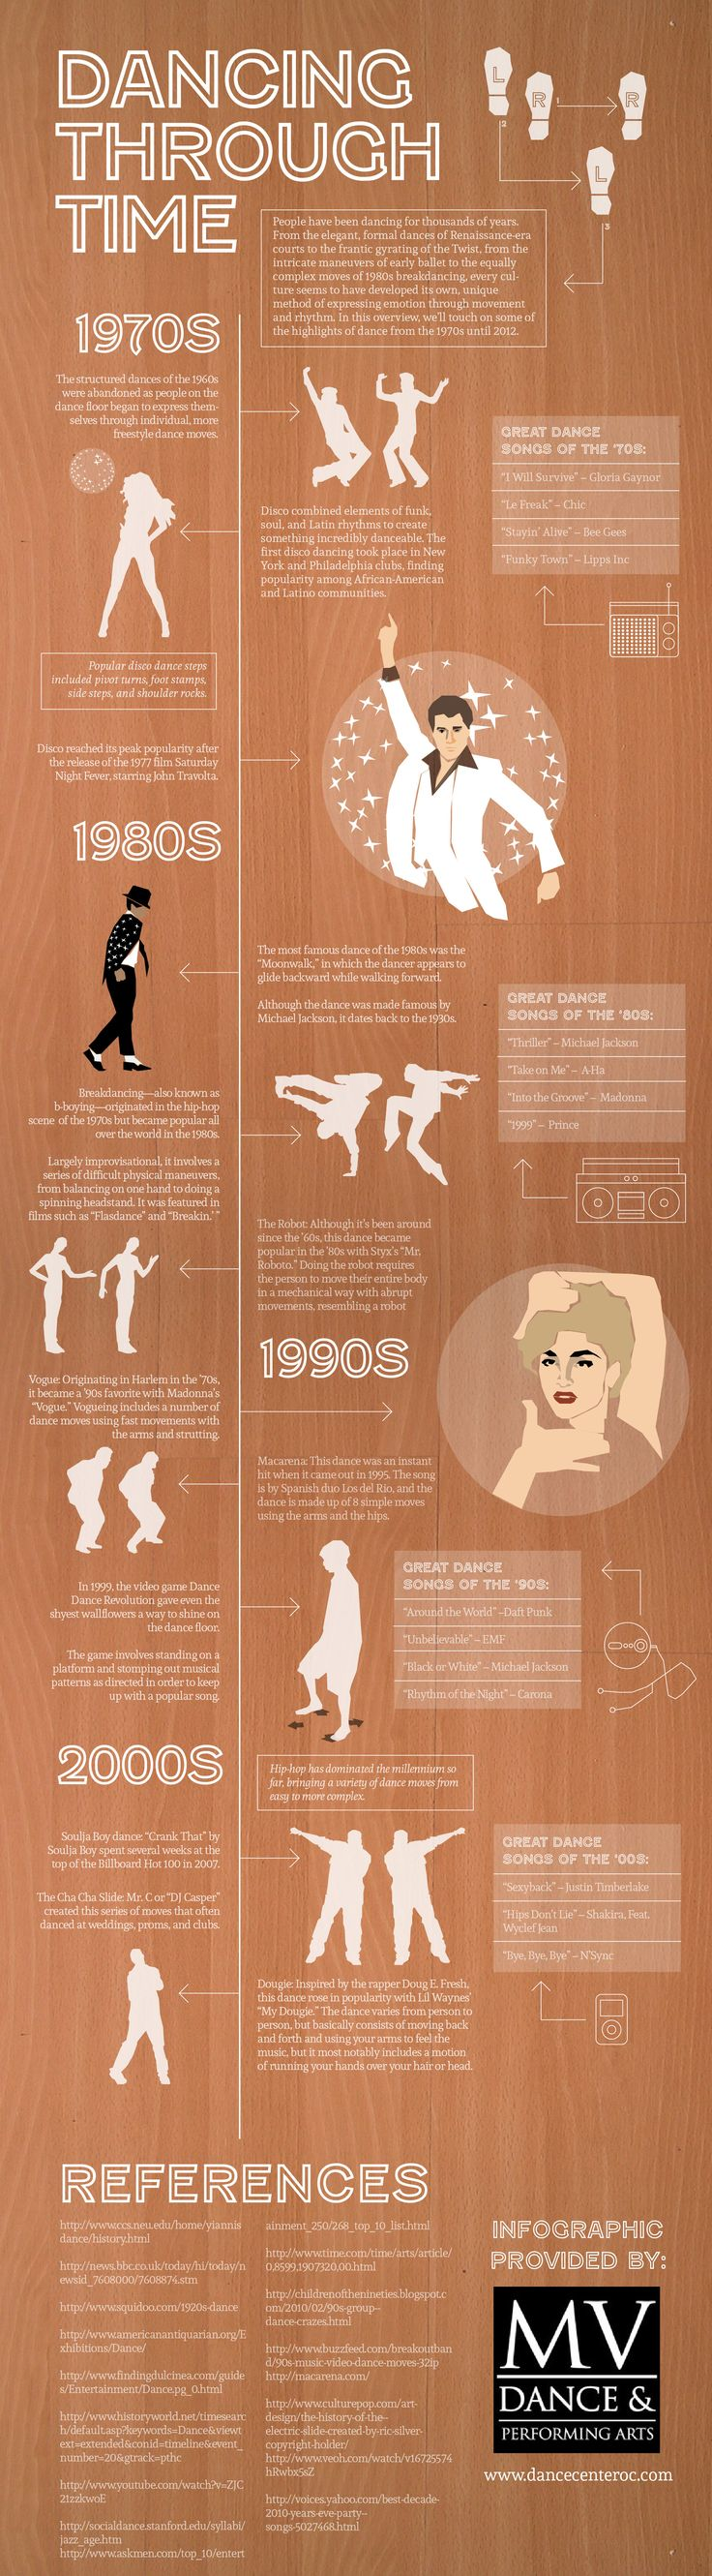 Infographic of dance through time www.theworlddances.com/ #theworlddances #dance